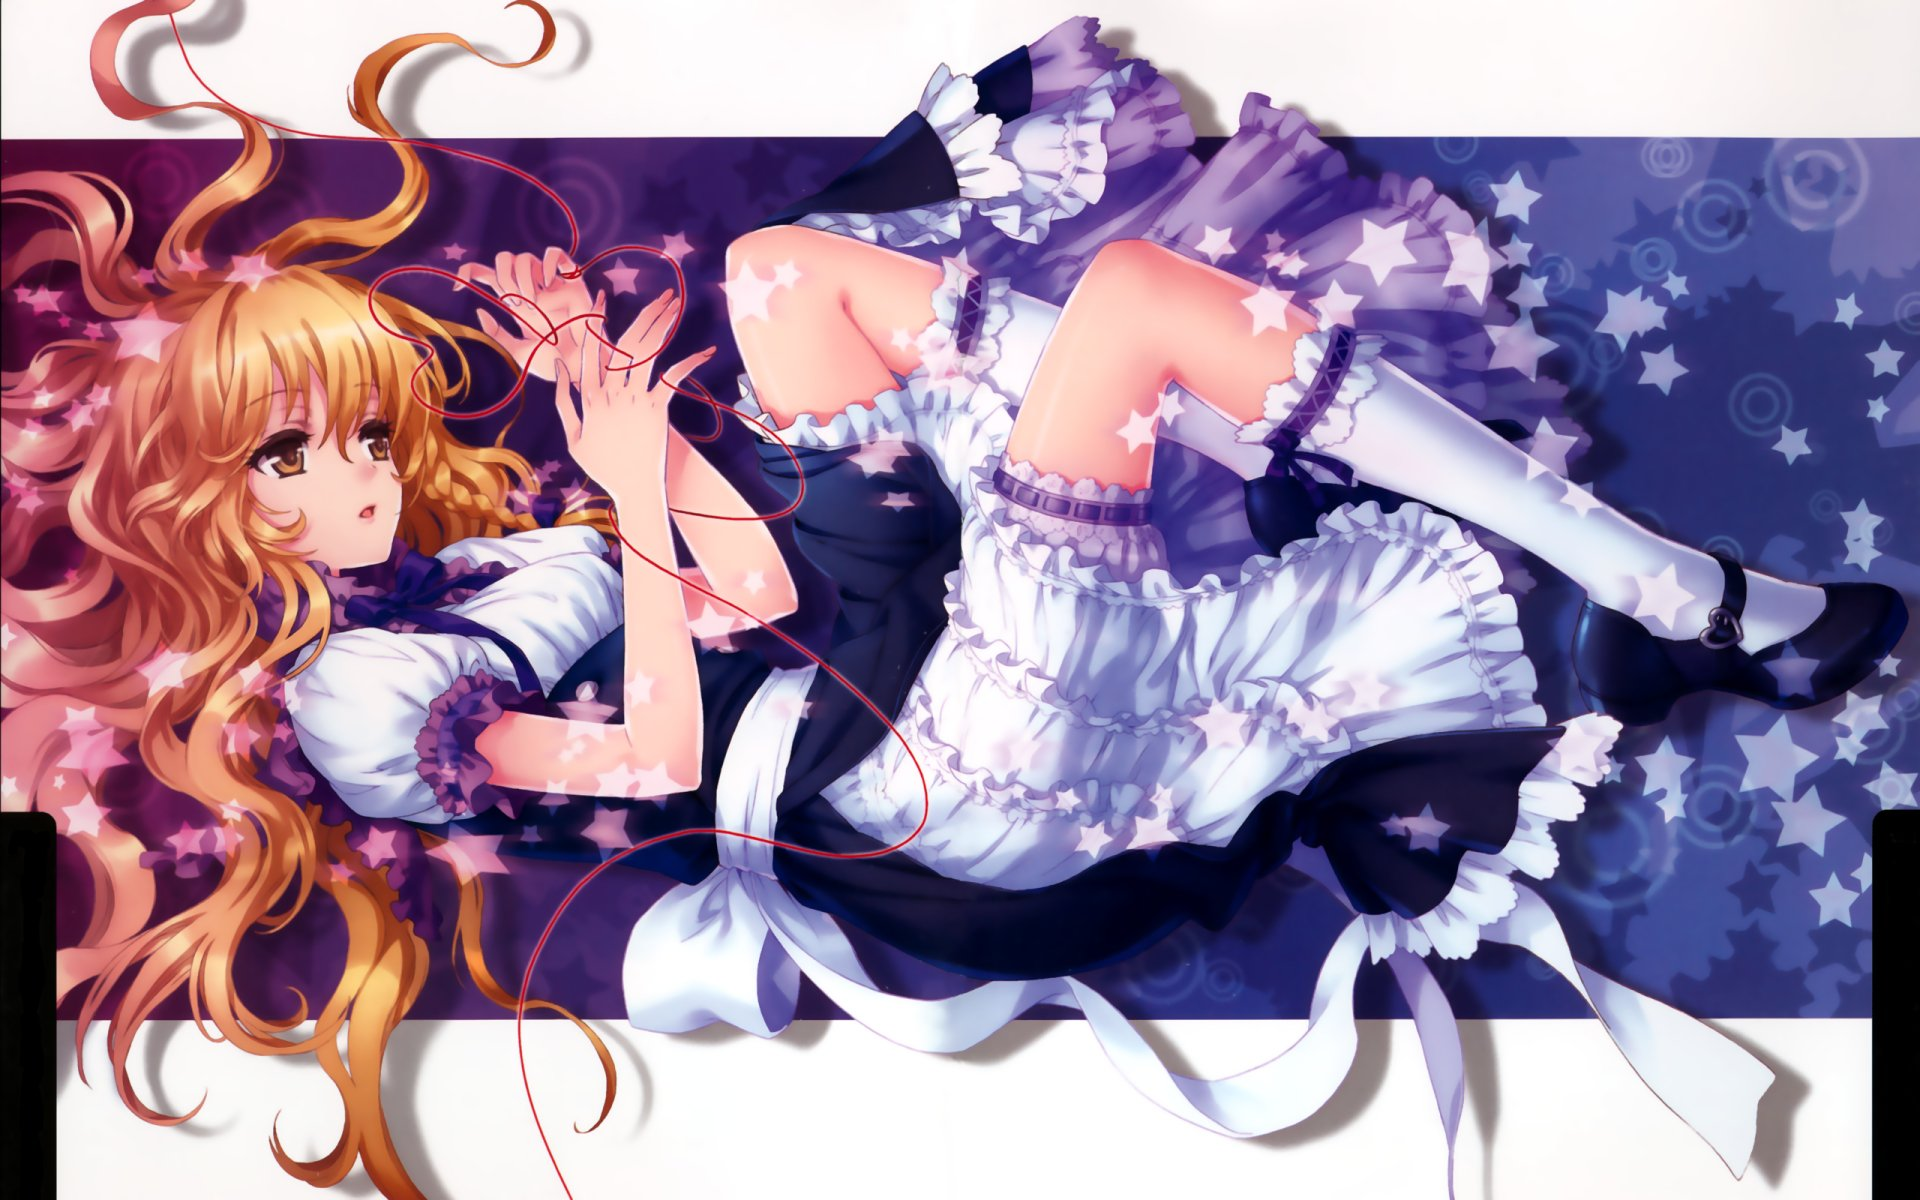 Anime - Touhou  Marisa Kirisame Wallpaper